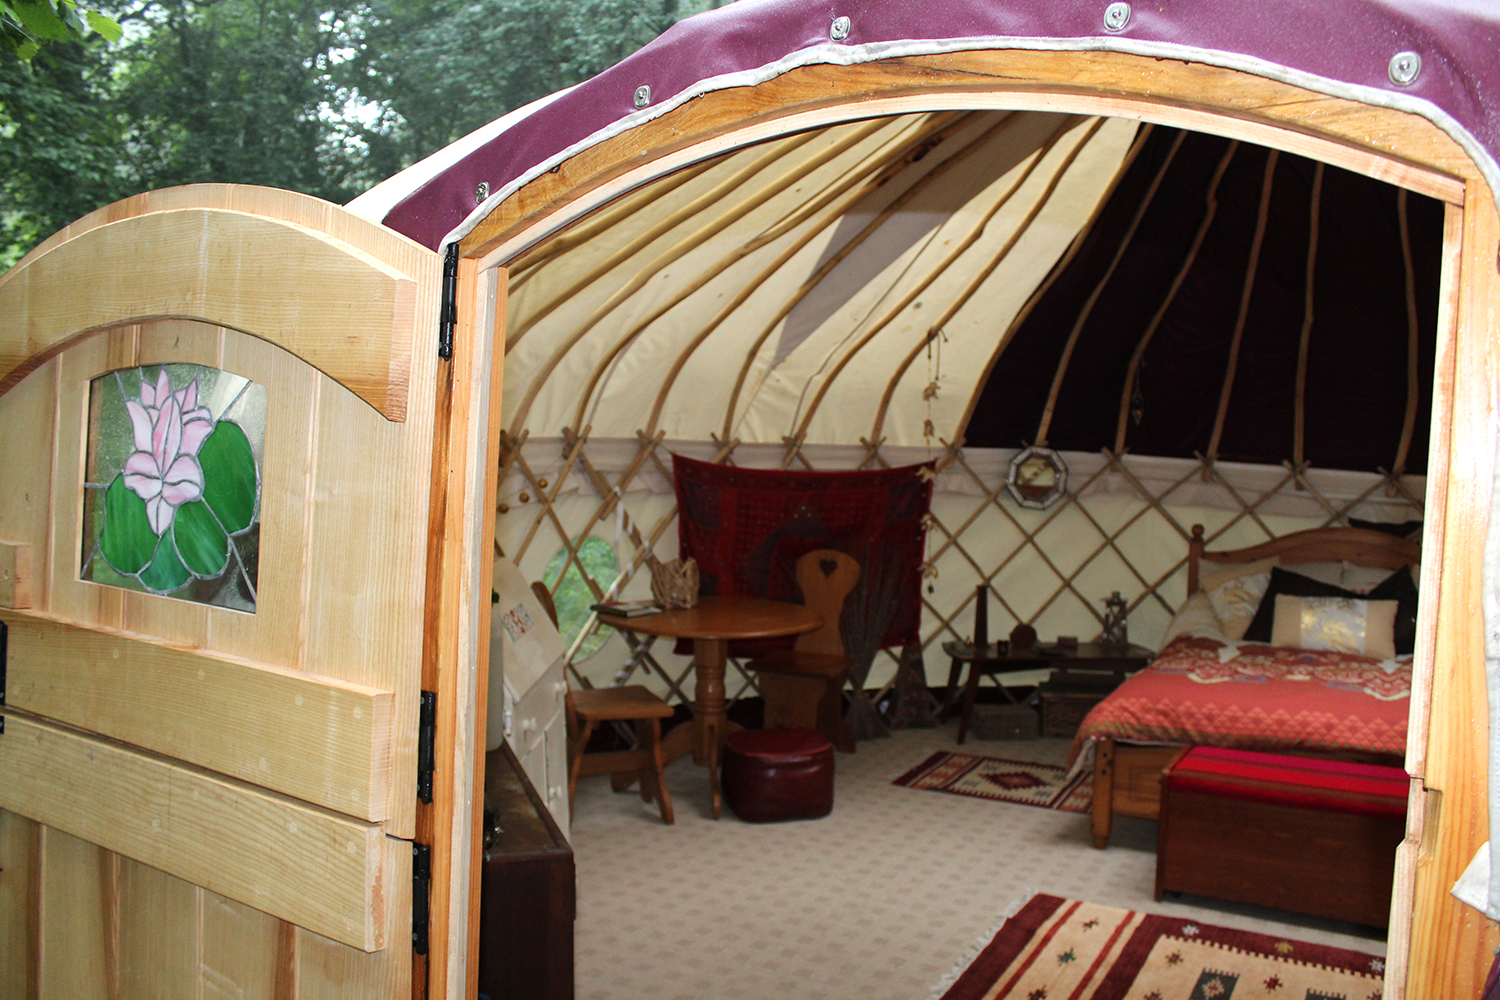 Enter a magical glamping world